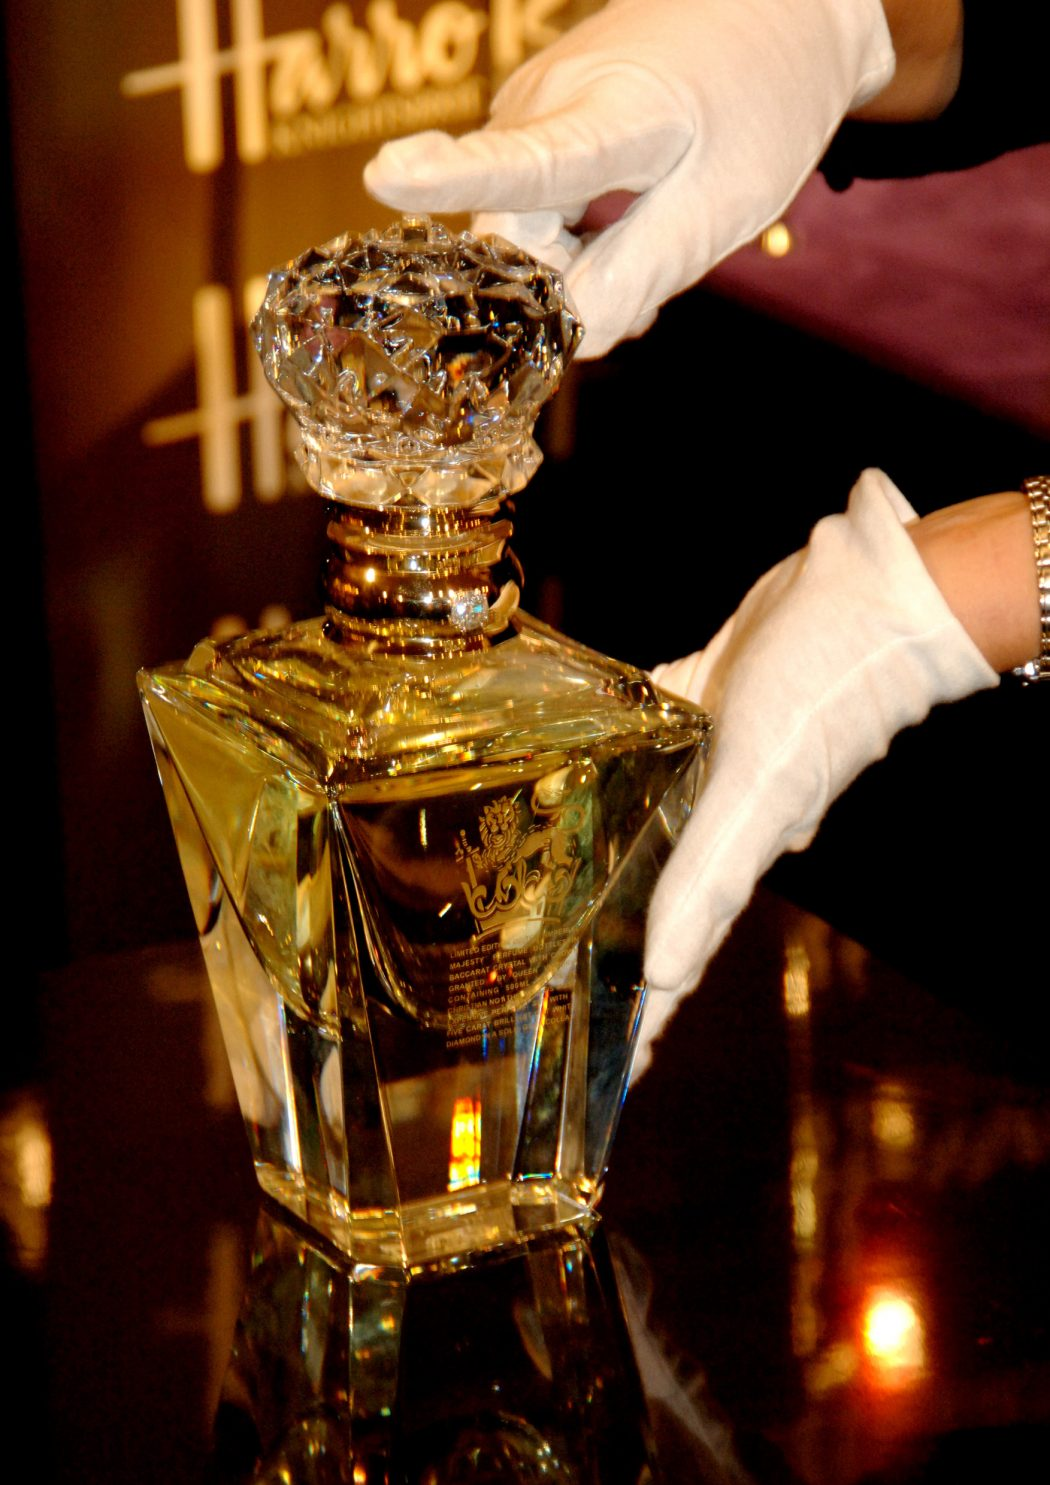 clive christian no 1 perfume imperial majesty edition on display at harrods department store1 10 Most Expensive Perfumes for Women in The World 2013